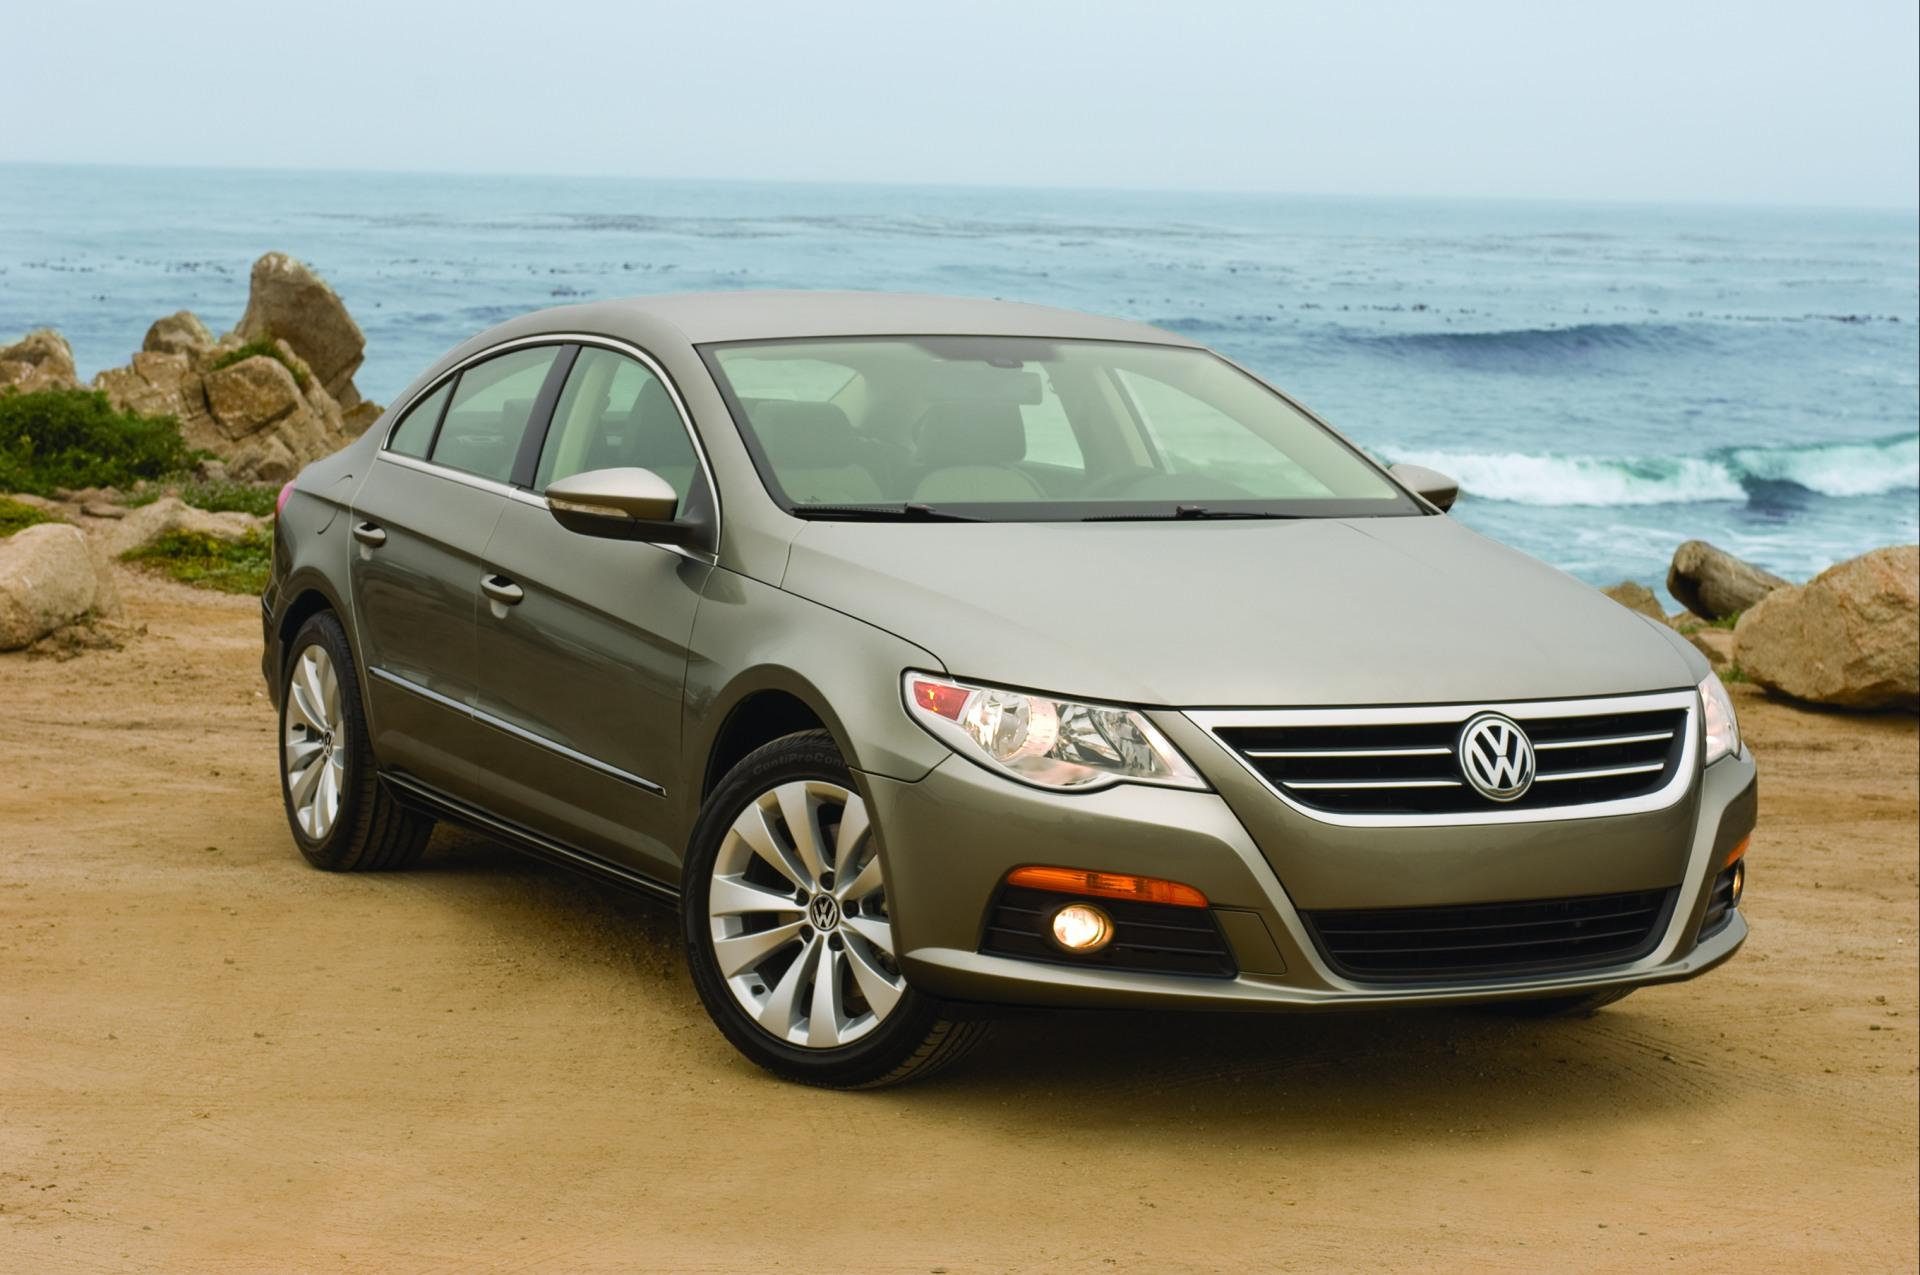 2009 volkswagen cc news and information. Black Bedroom Furniture Sets. Home Design Ideas